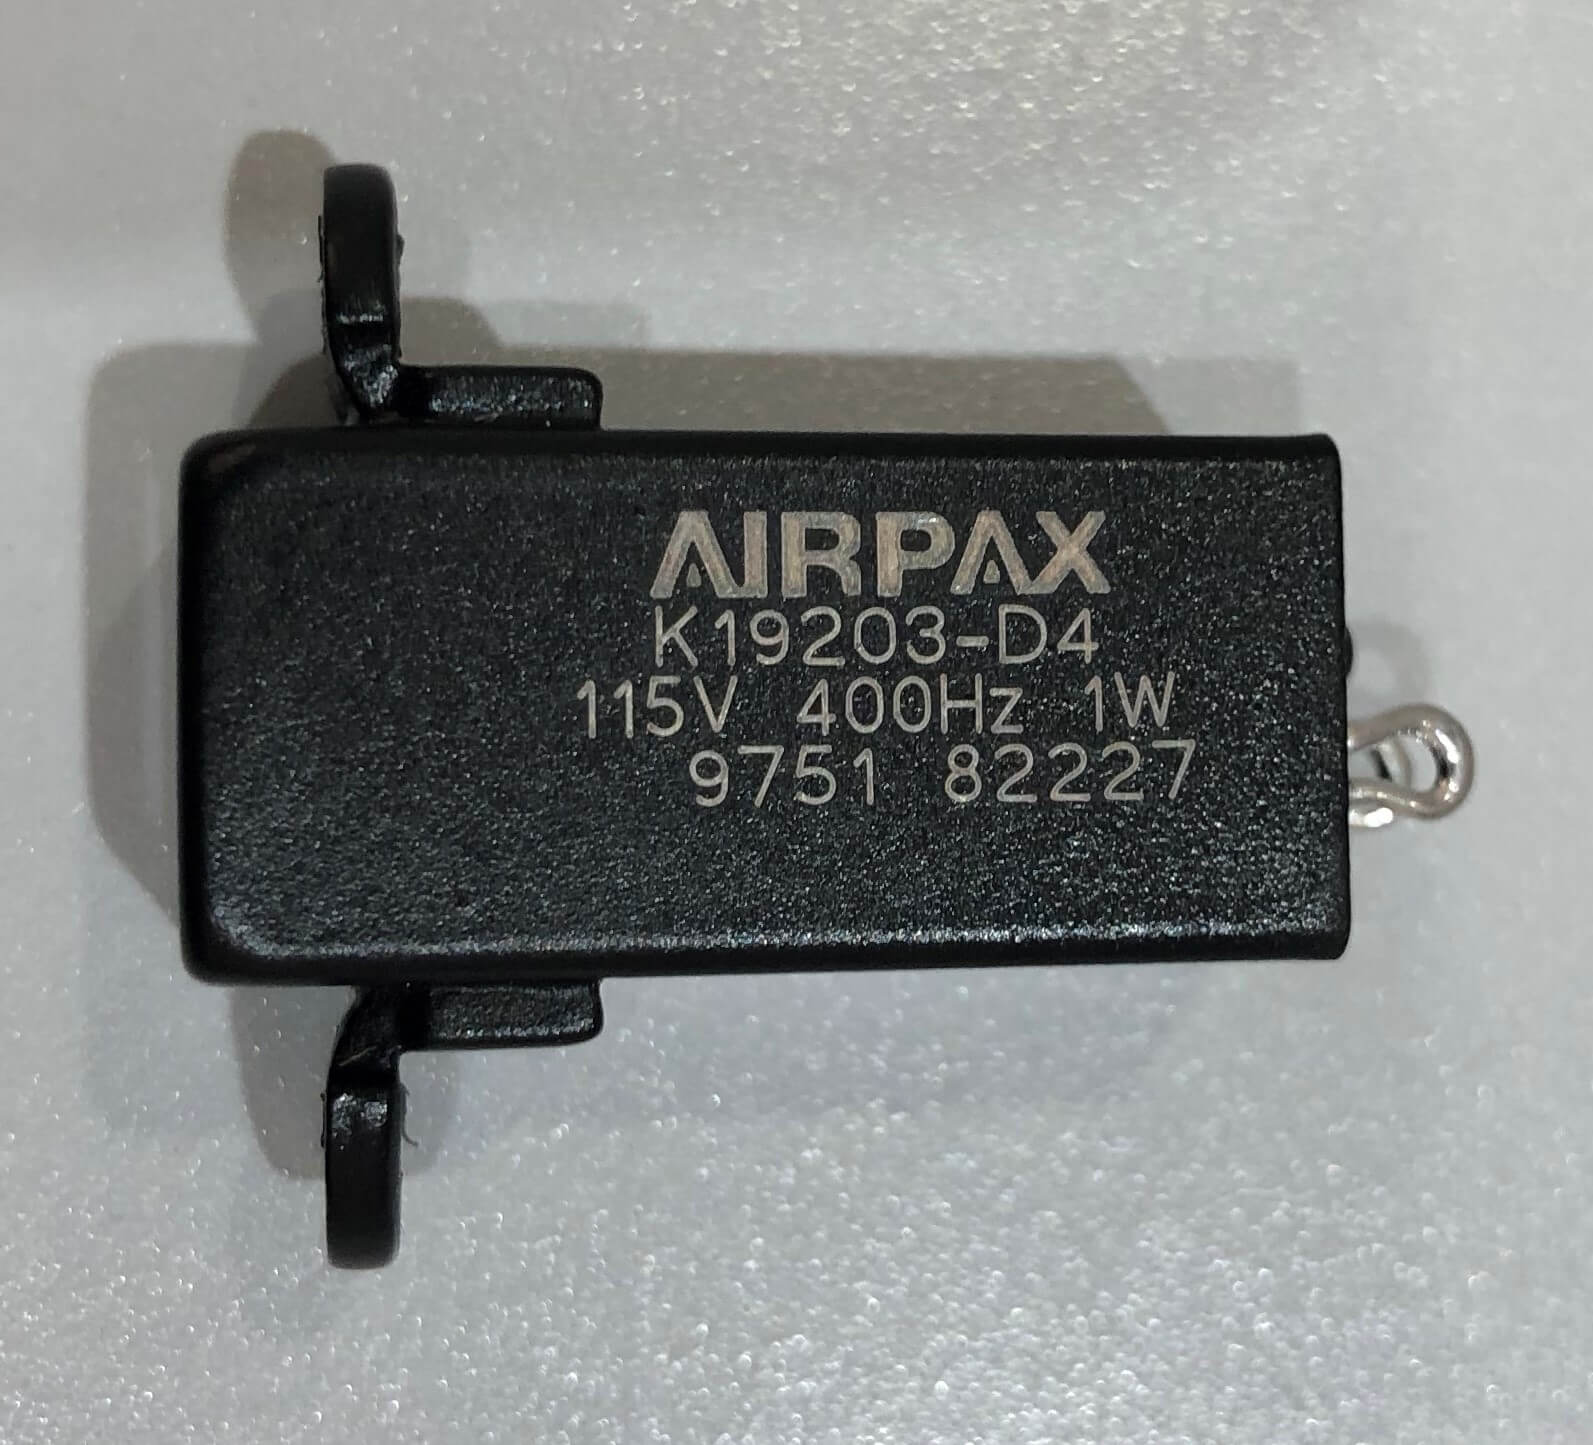 Airpax Obsolete  ETI - K19203-D4